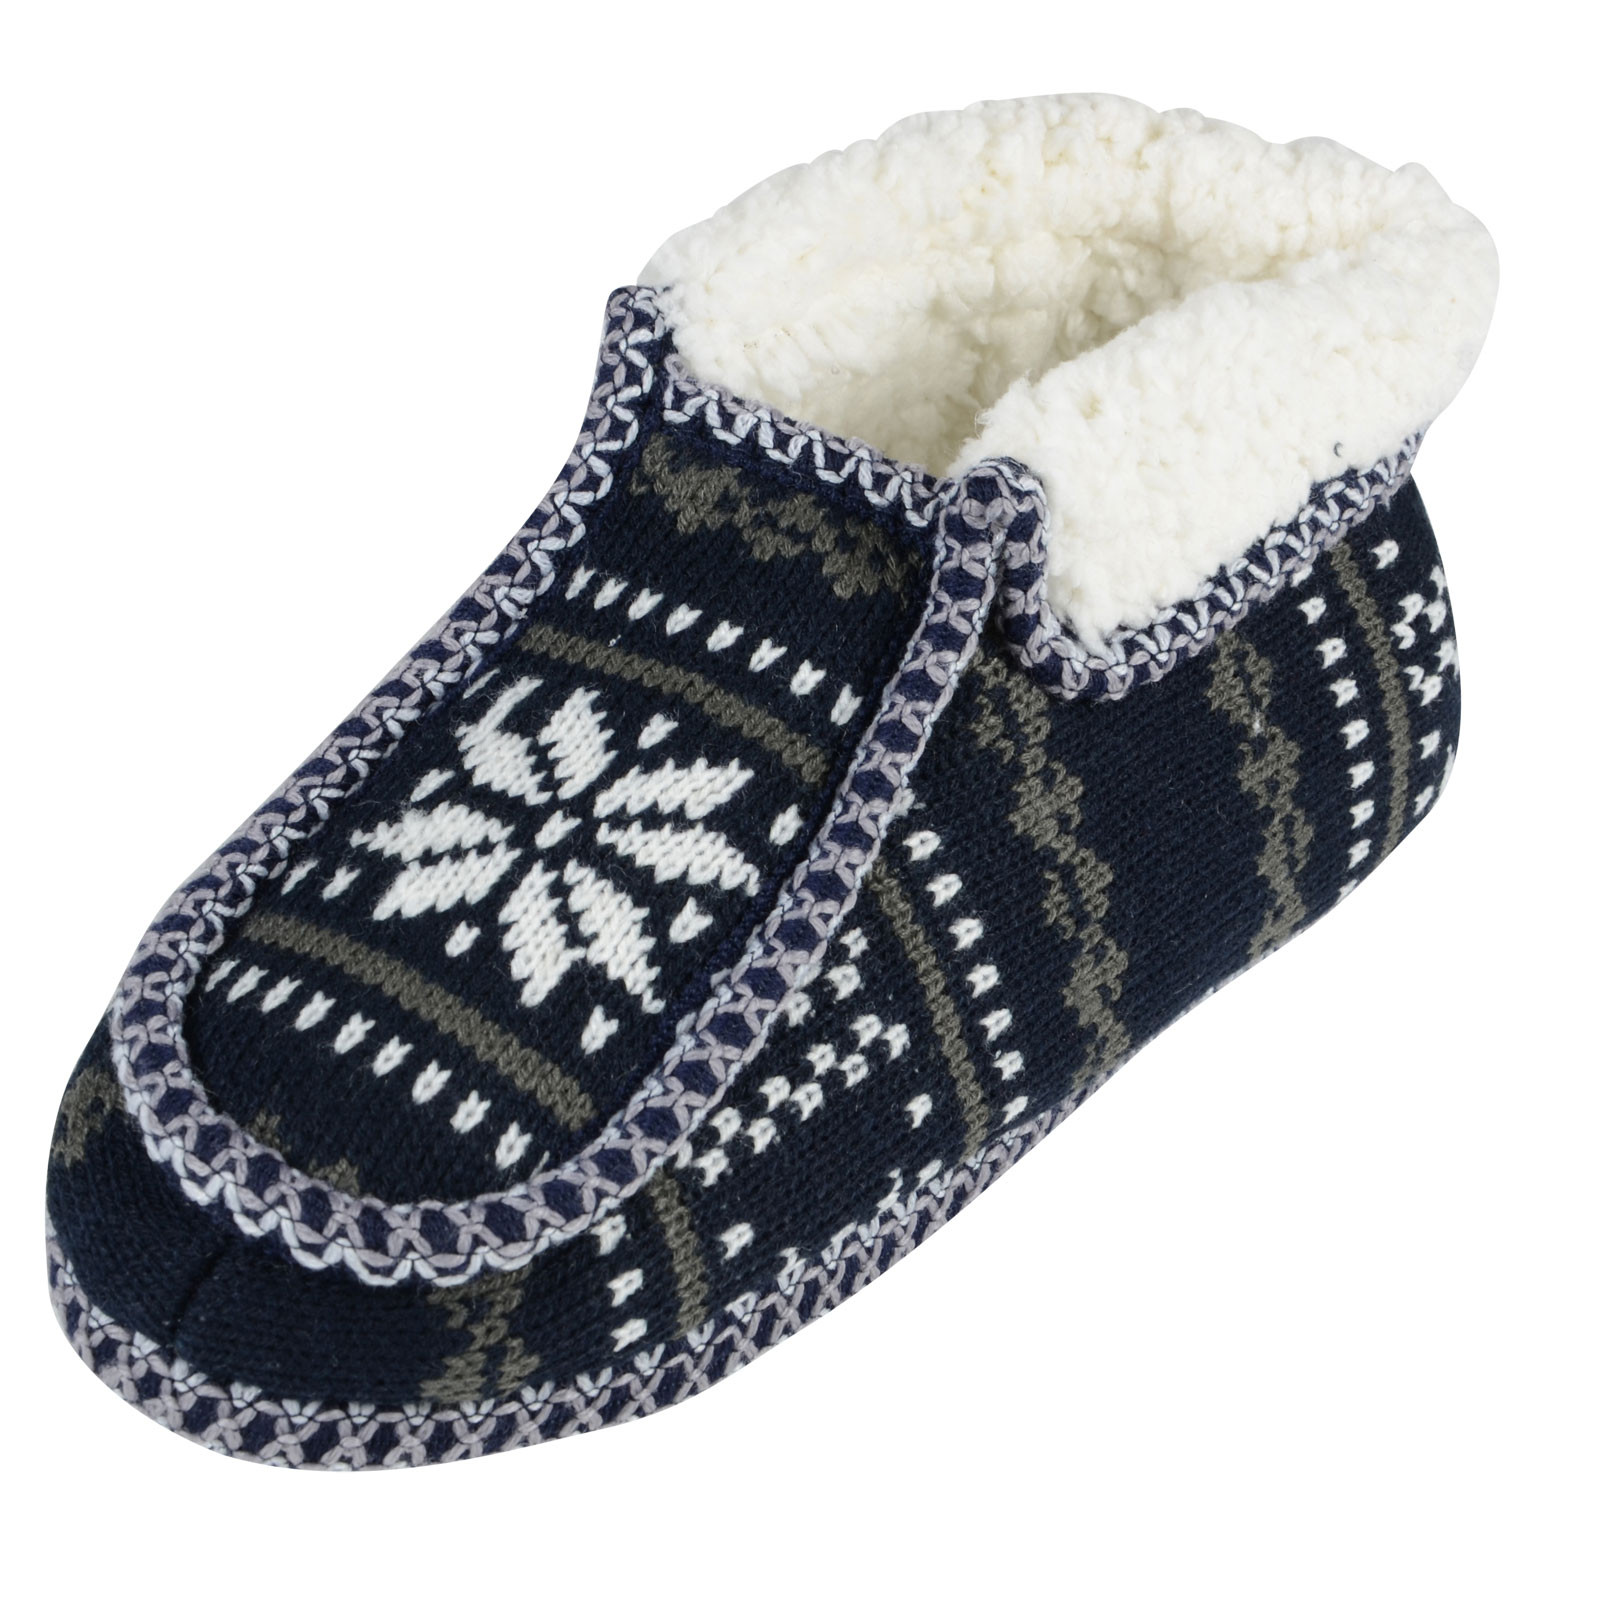 Best Of La S Fairisle Patterned Knitted Bootie Style Slippers Slipper soles for Knitting Of Superb 40 Images Slipper soles for Knitting